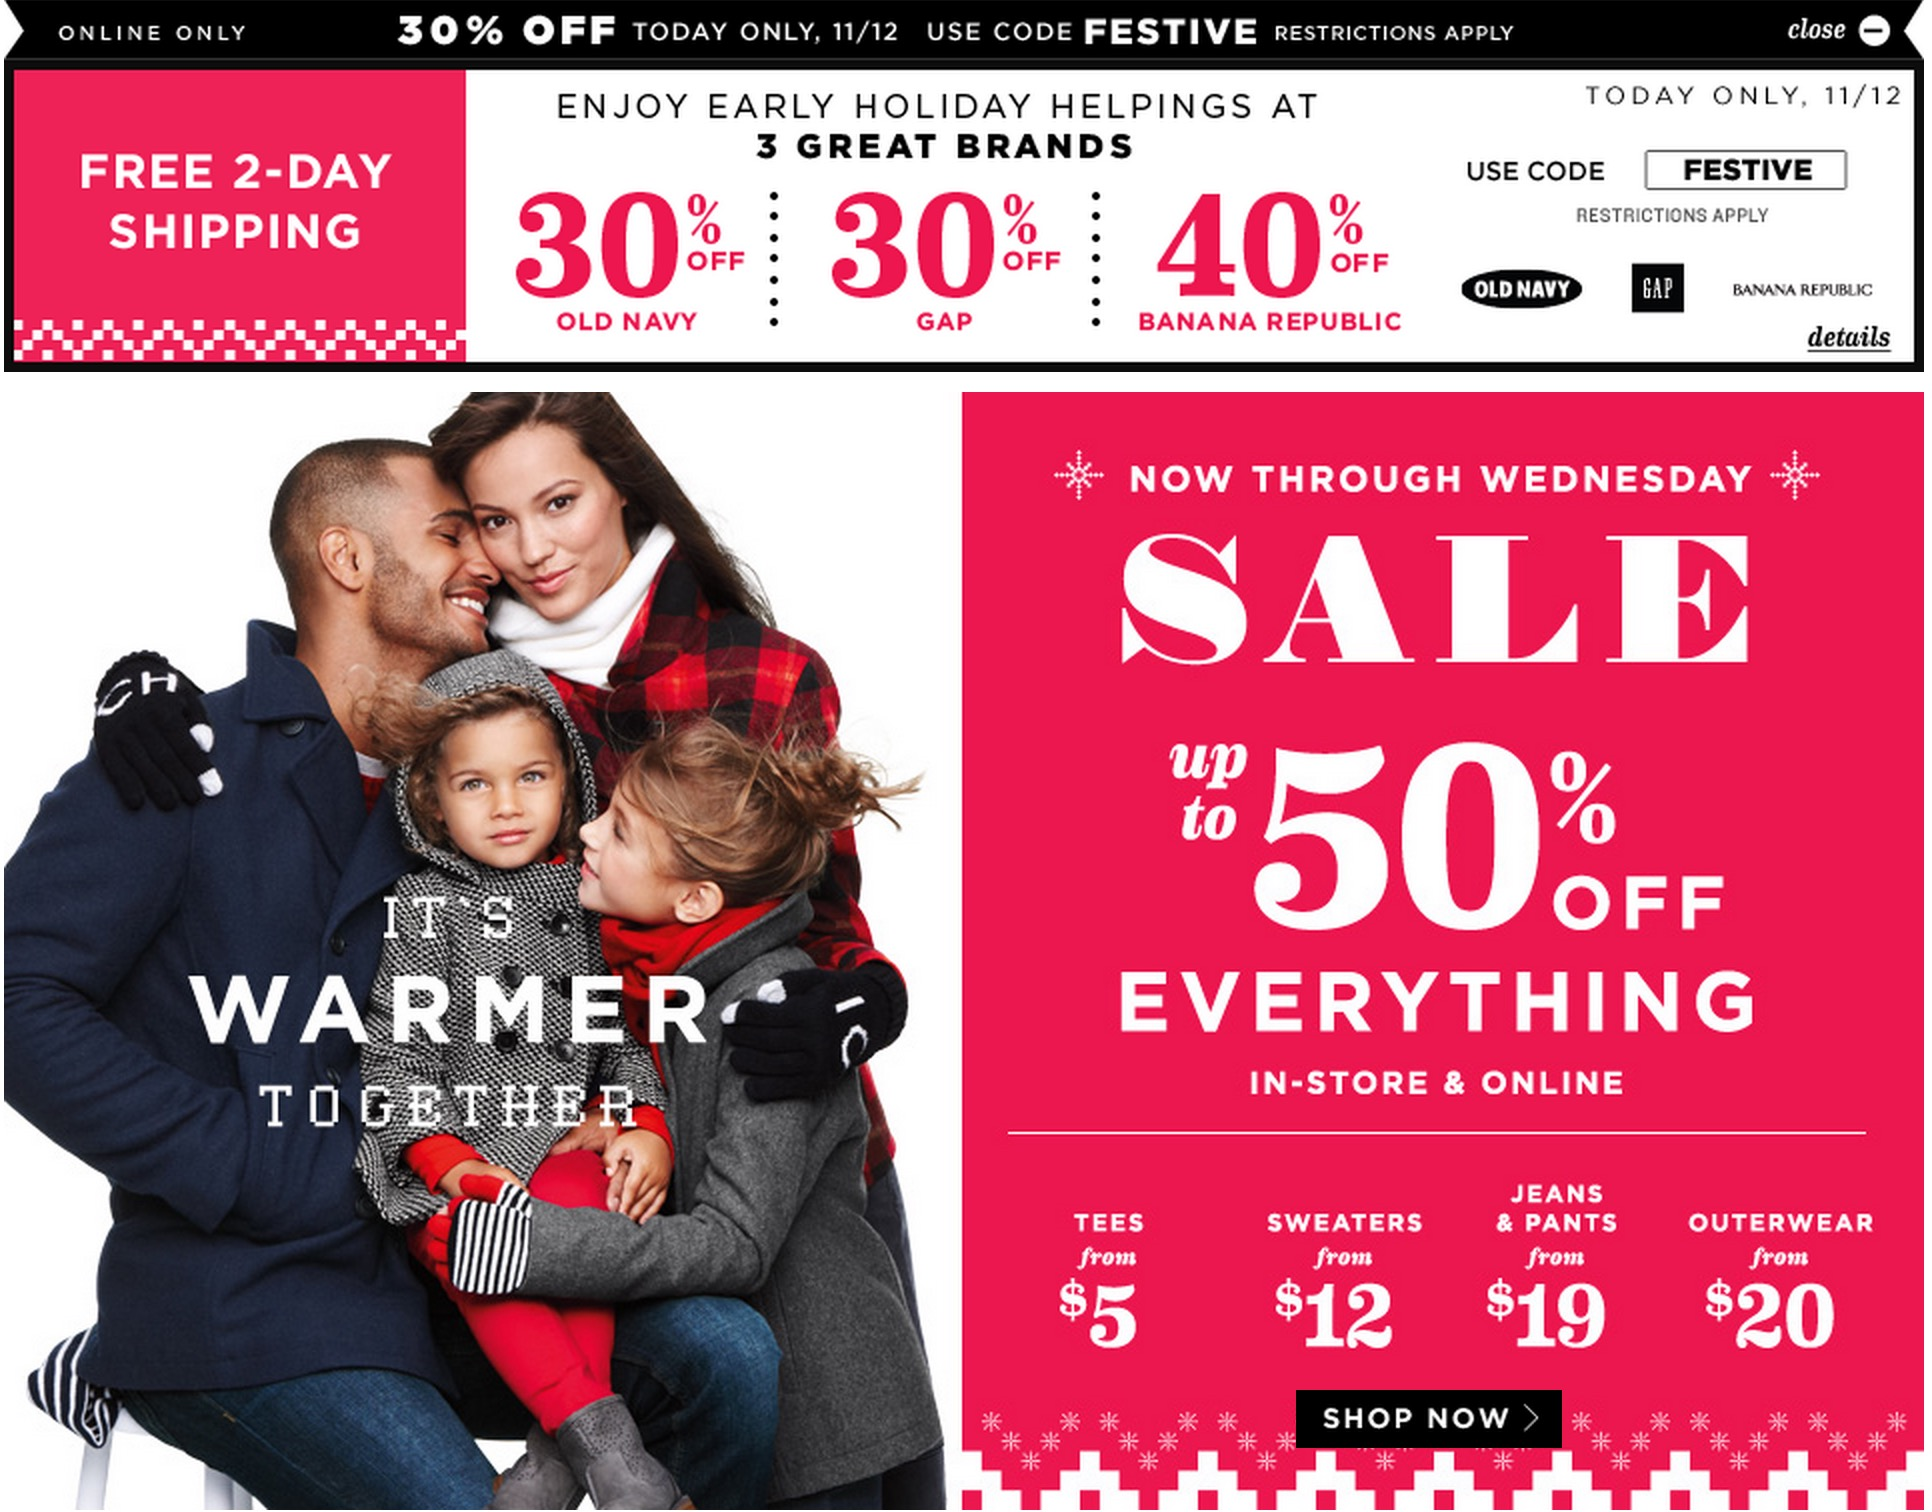 Old-navy-sale-discount | 9to5Toys